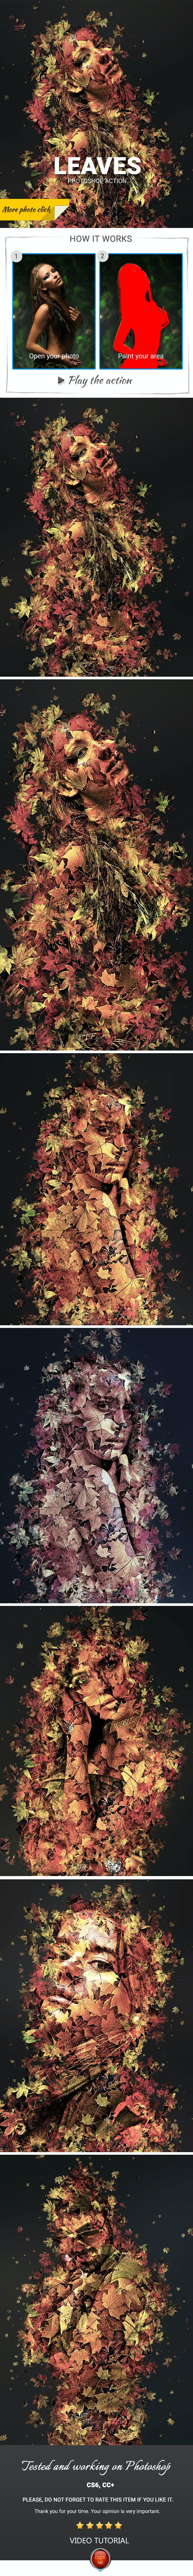 Leaves Photoshop Action - Photo Effects Actions